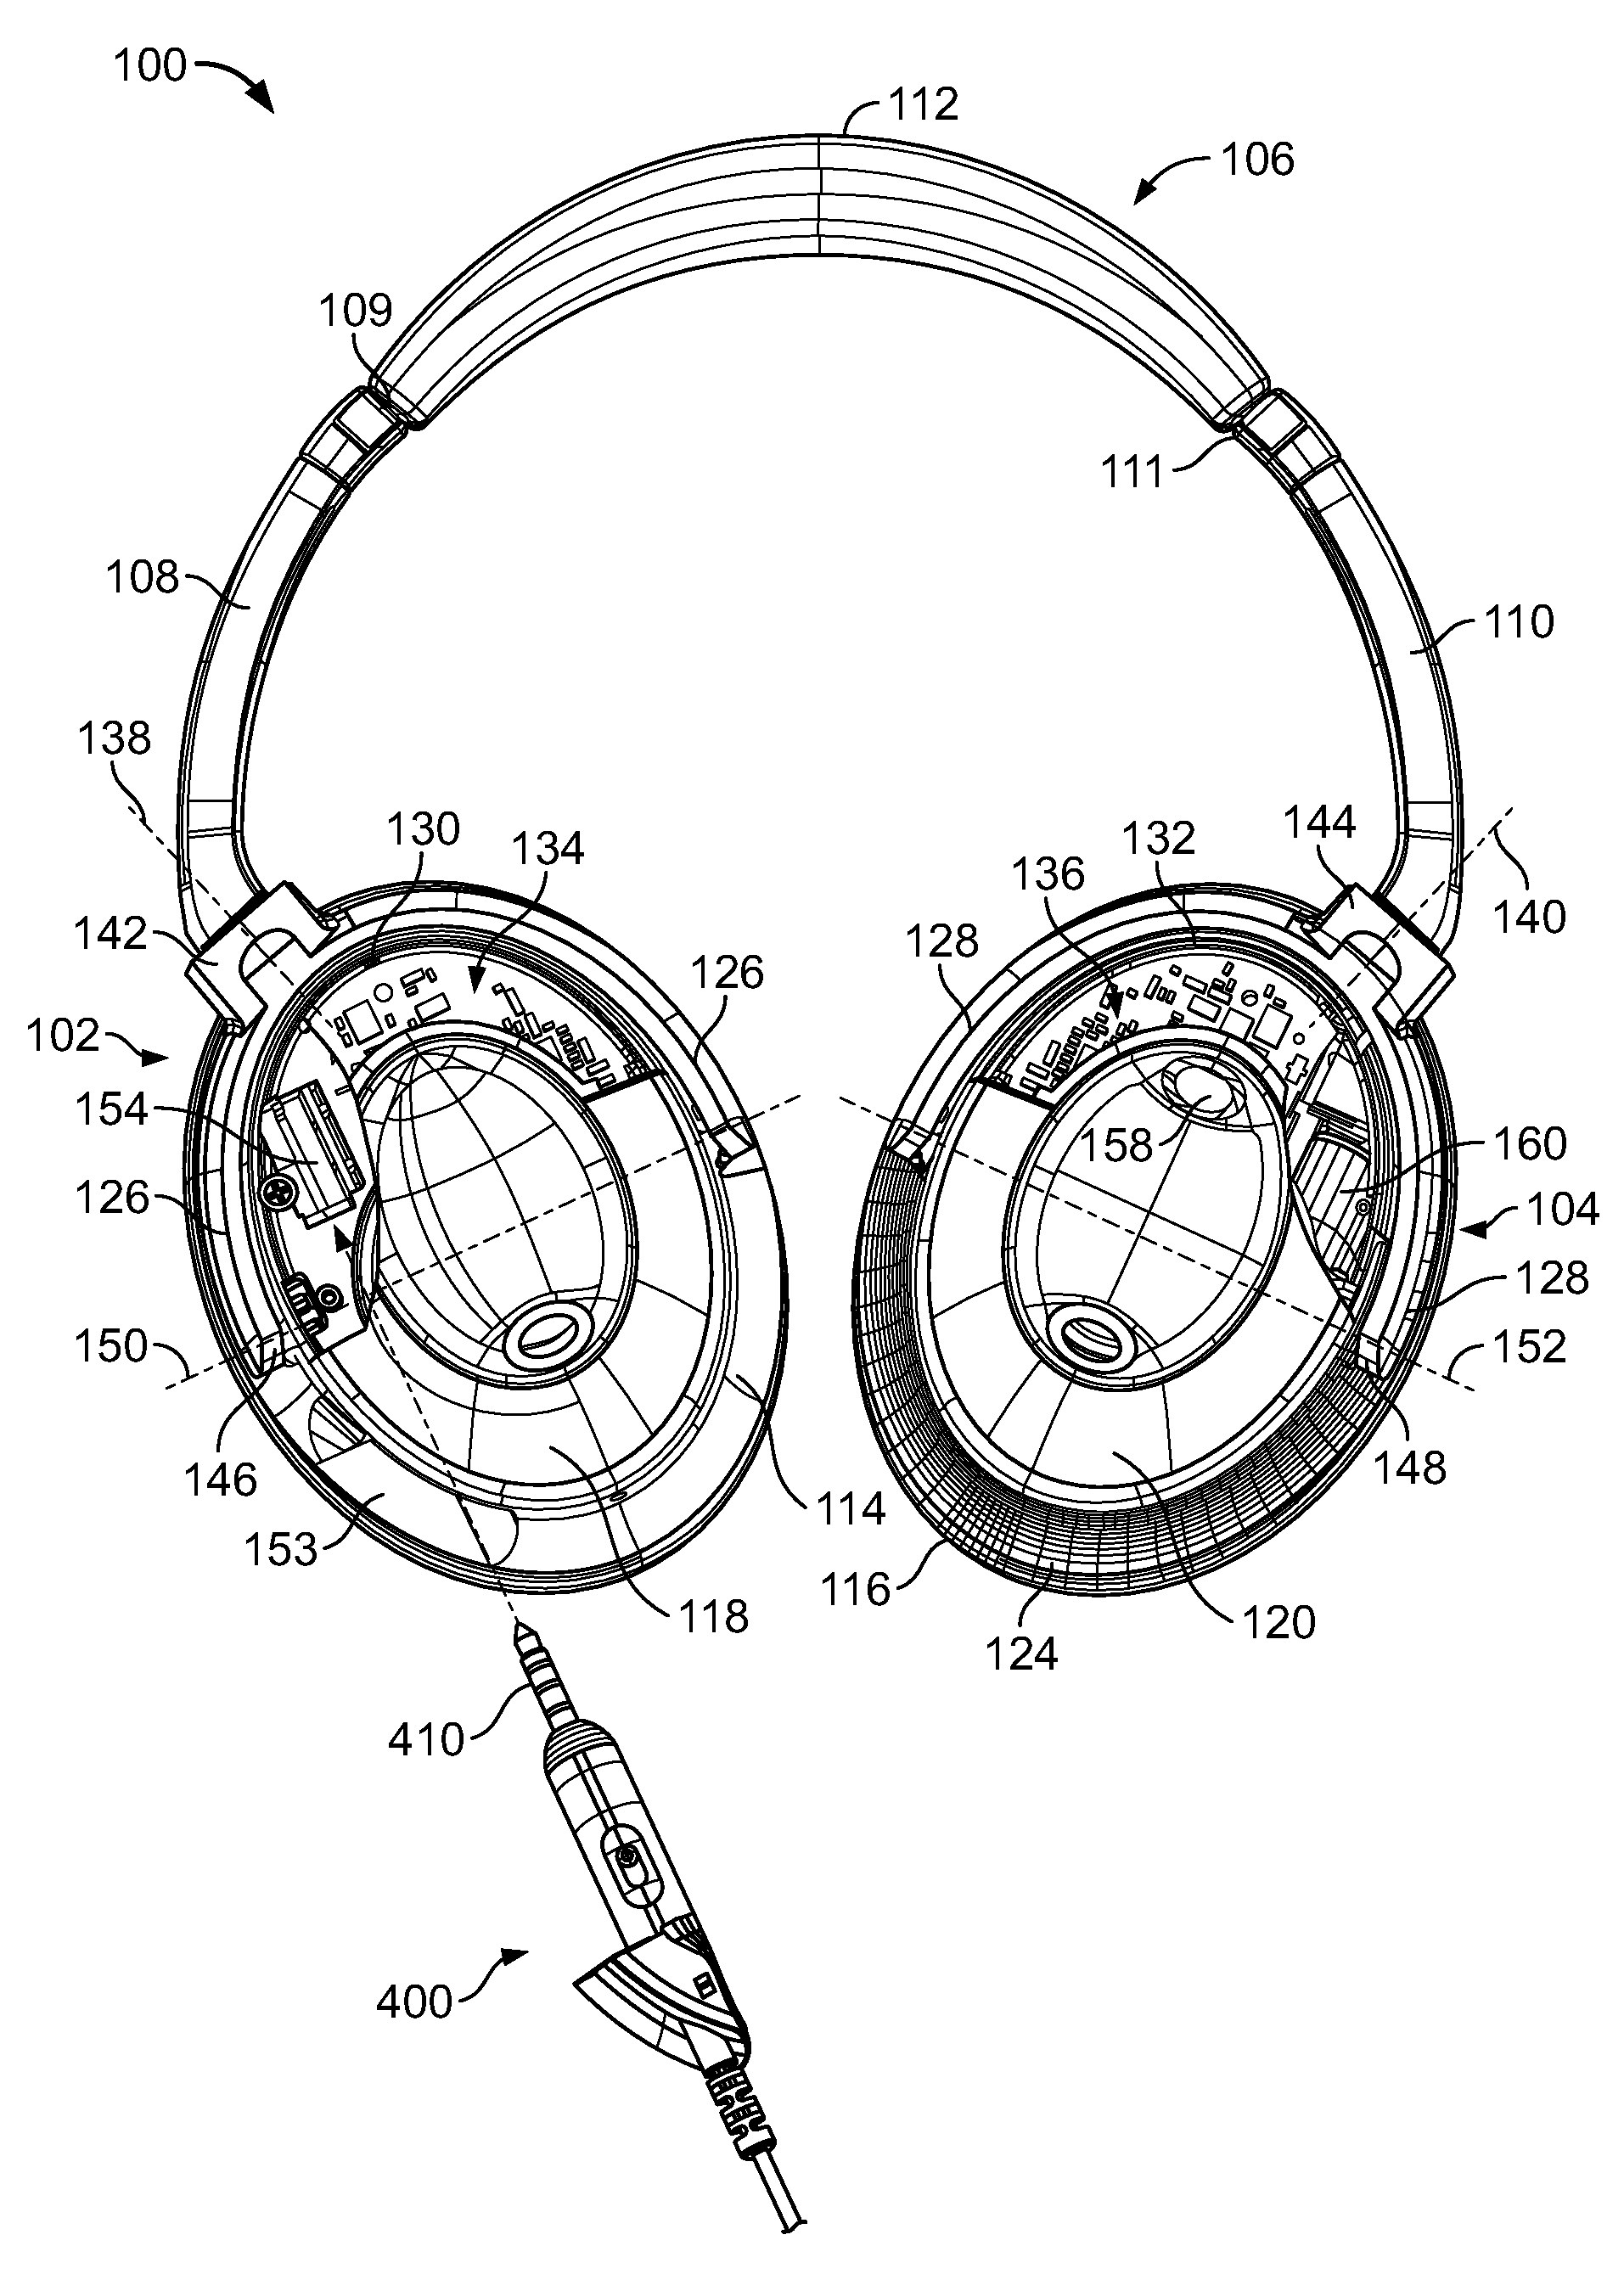 bose headphone wiring diagram   29 wiring diagram images